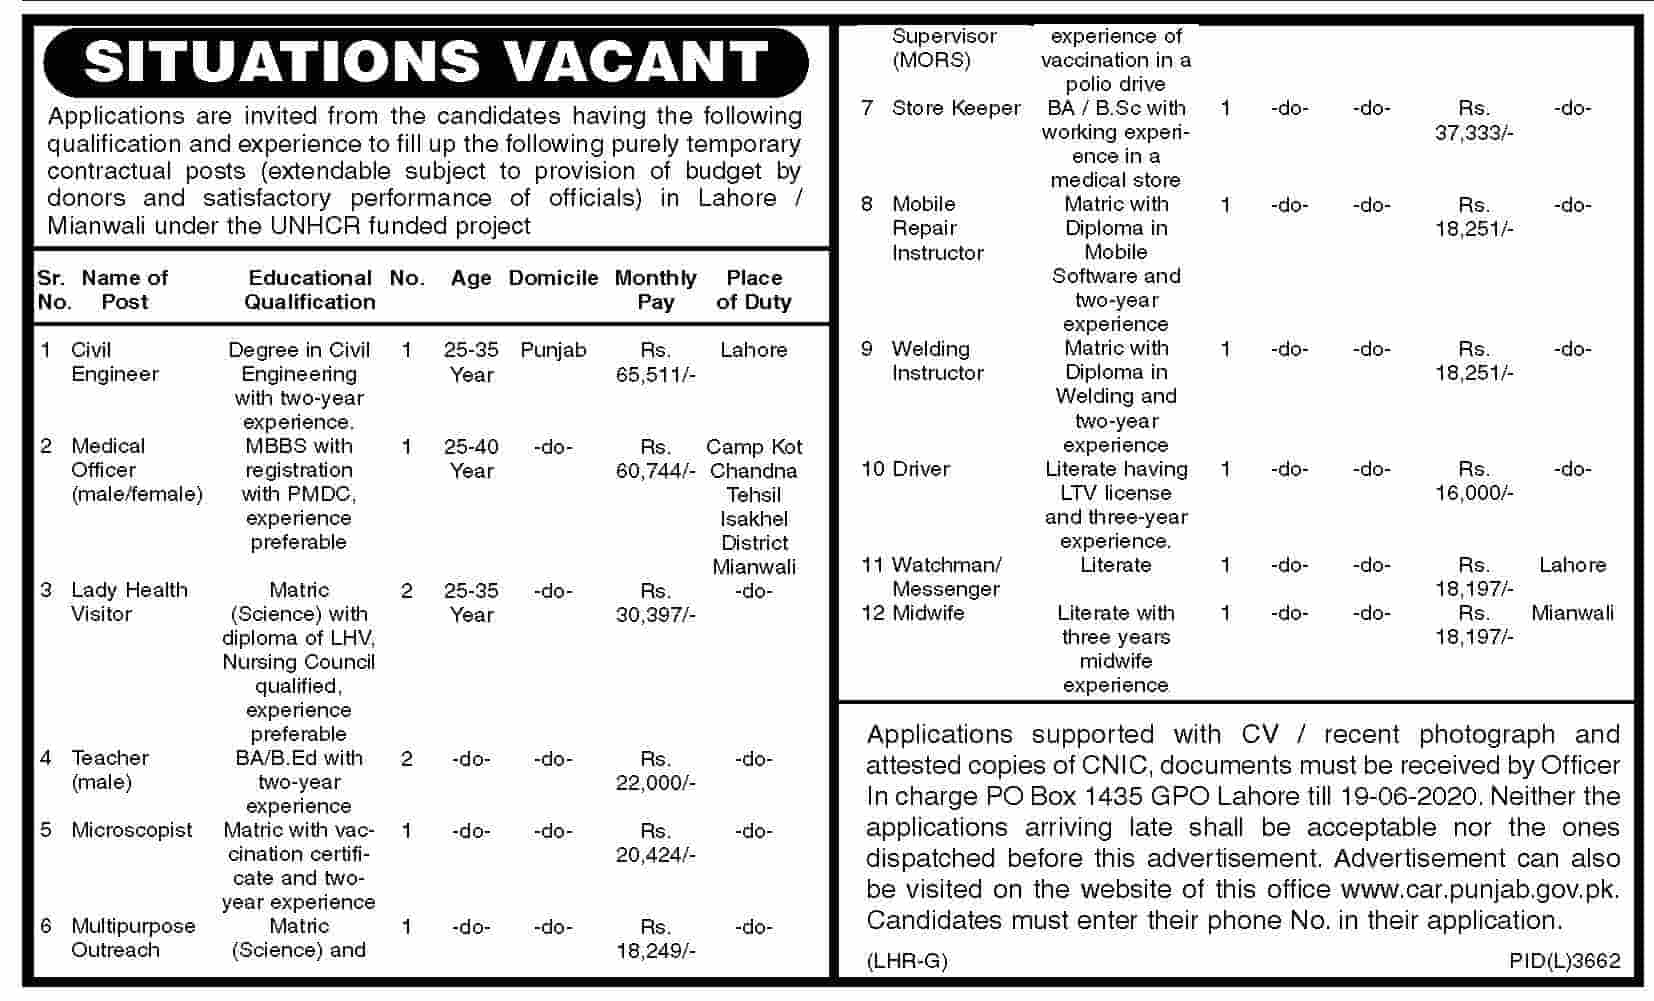 United Nations High Commissioner for Refugees UNHCR Funded Project Jobs 2020